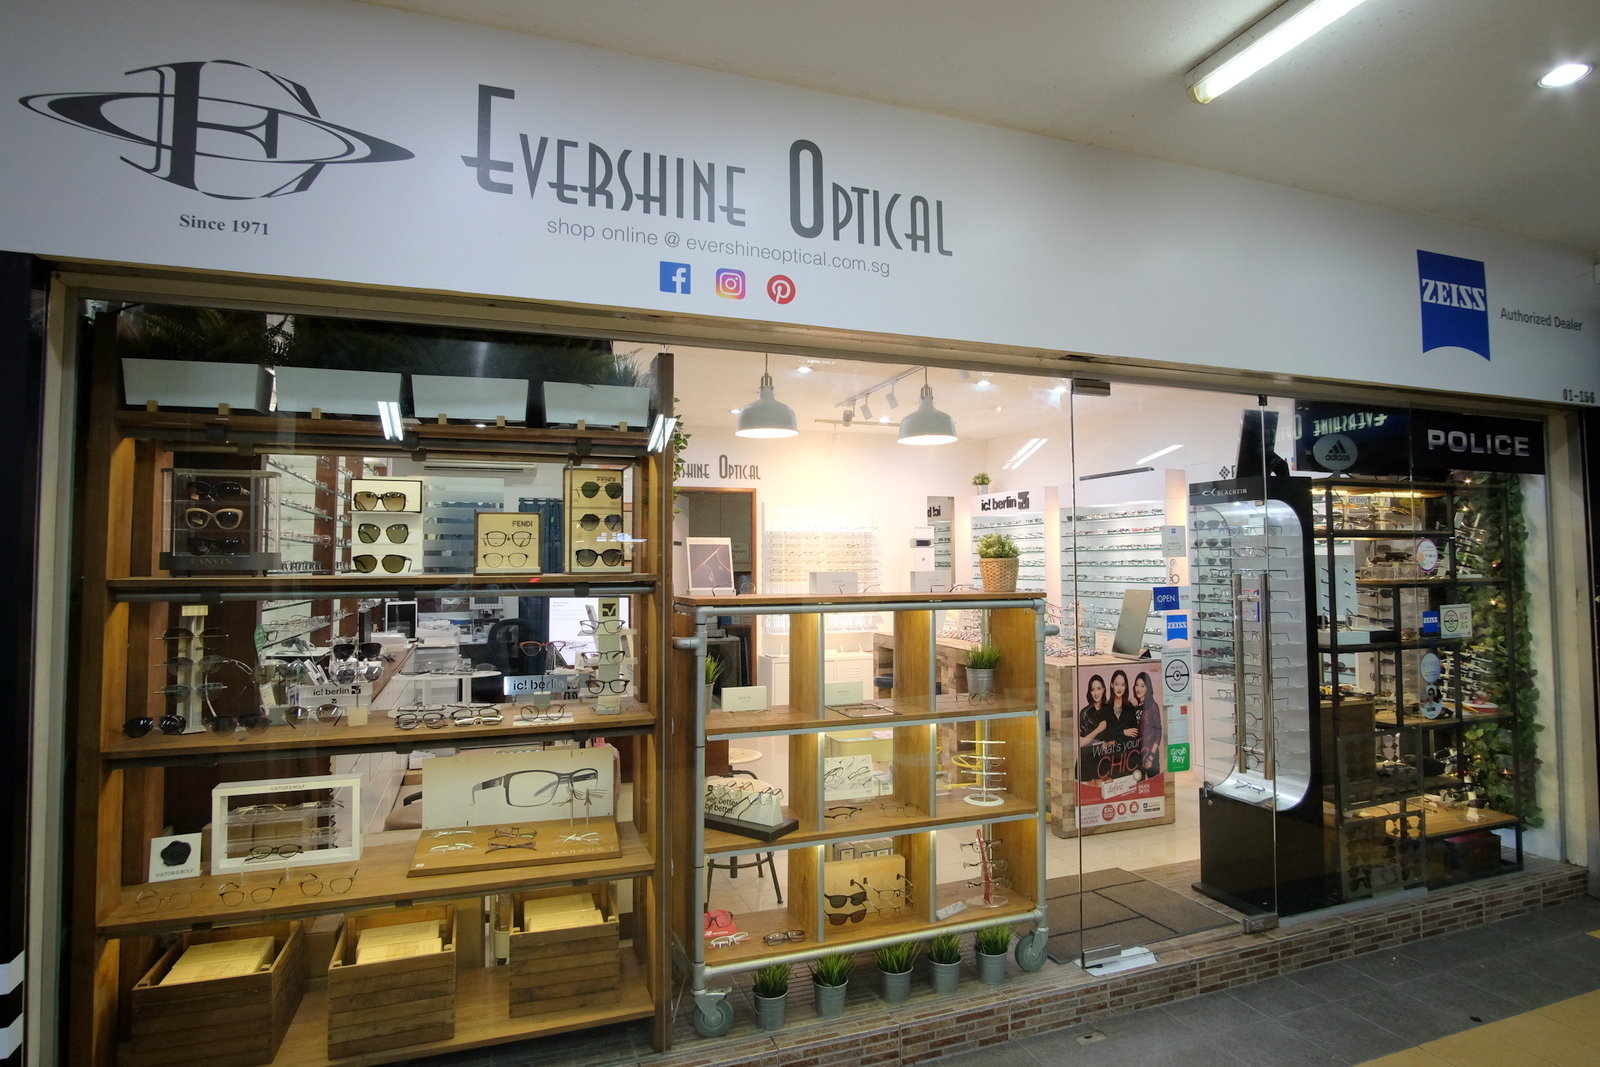 evershineoptical shop front